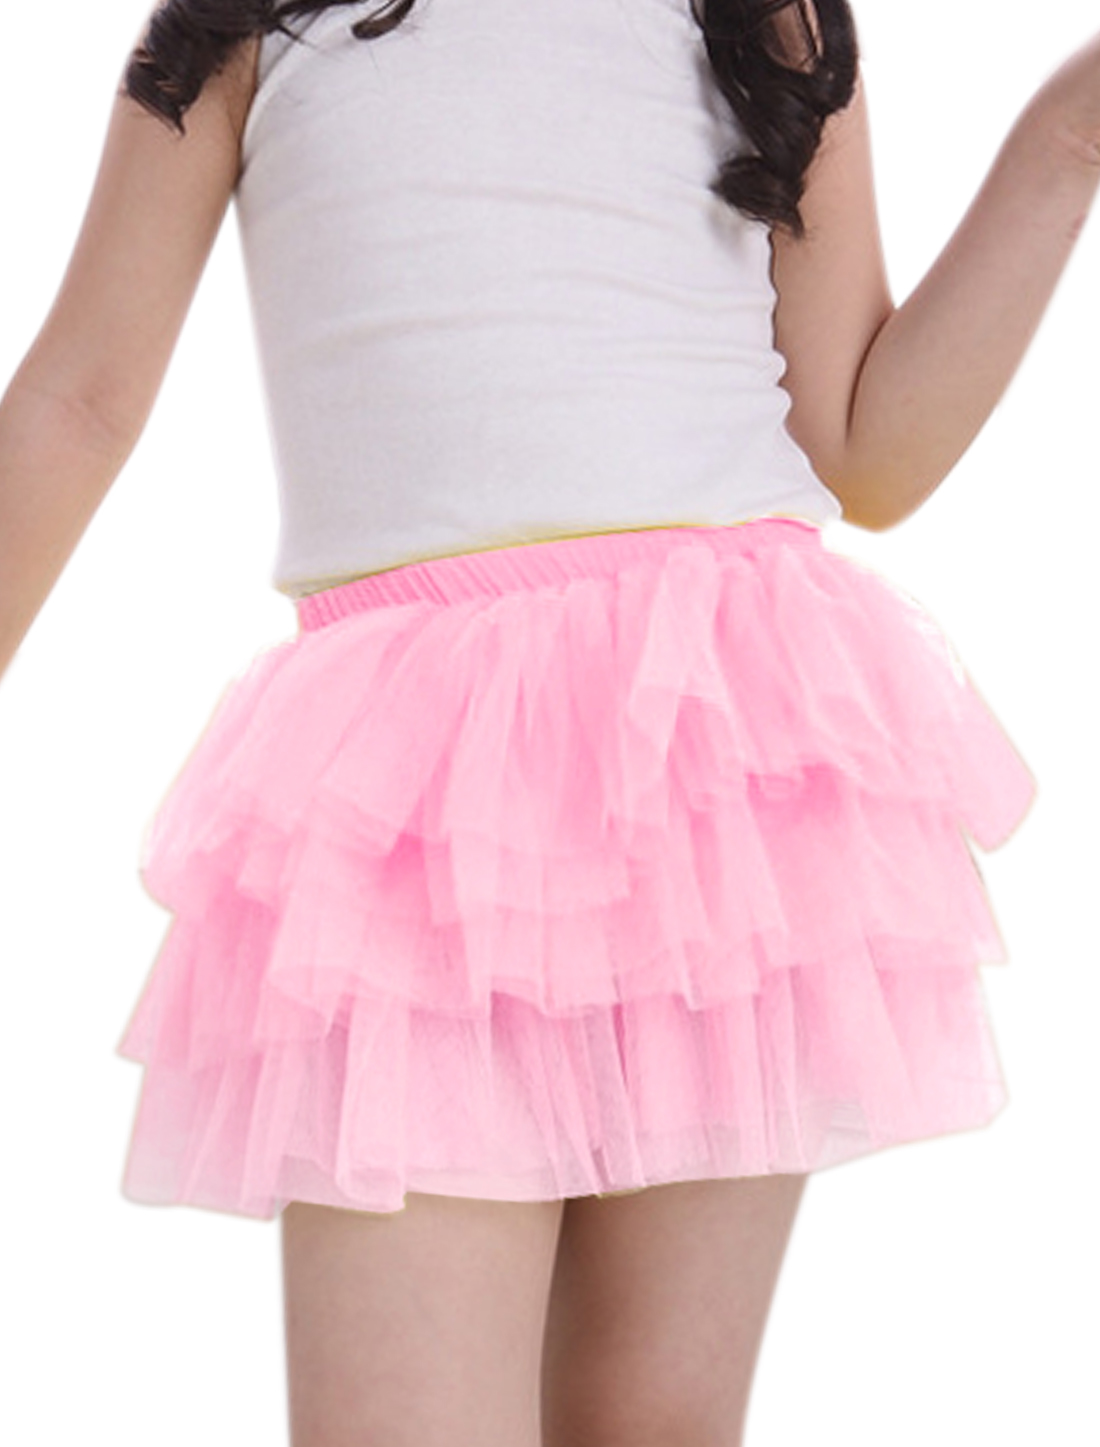 Girls Elastic Waist Mesh Panel Tiered A Line Skirt Pink 2T